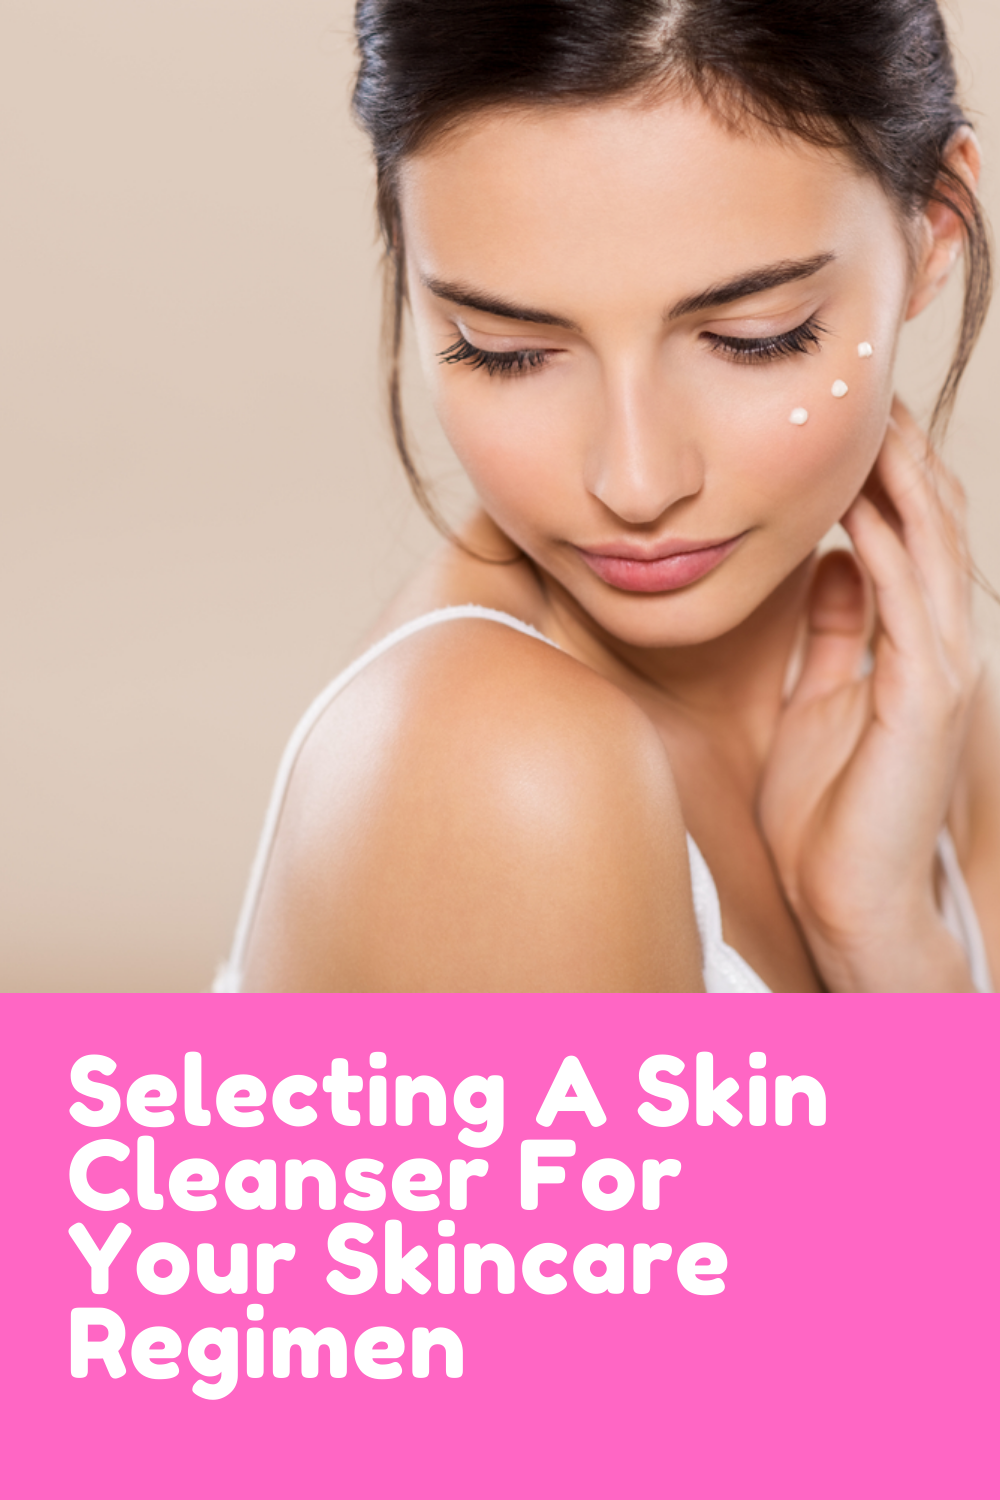 Selecting A Skin Cleanser For Your Skincare Regimen.To Cleanse, selecting a skin cleanser for your skincare regimen is very important. It Should be a Natural Skin care product. #skincare #organicskincare #naturalskincareproduct